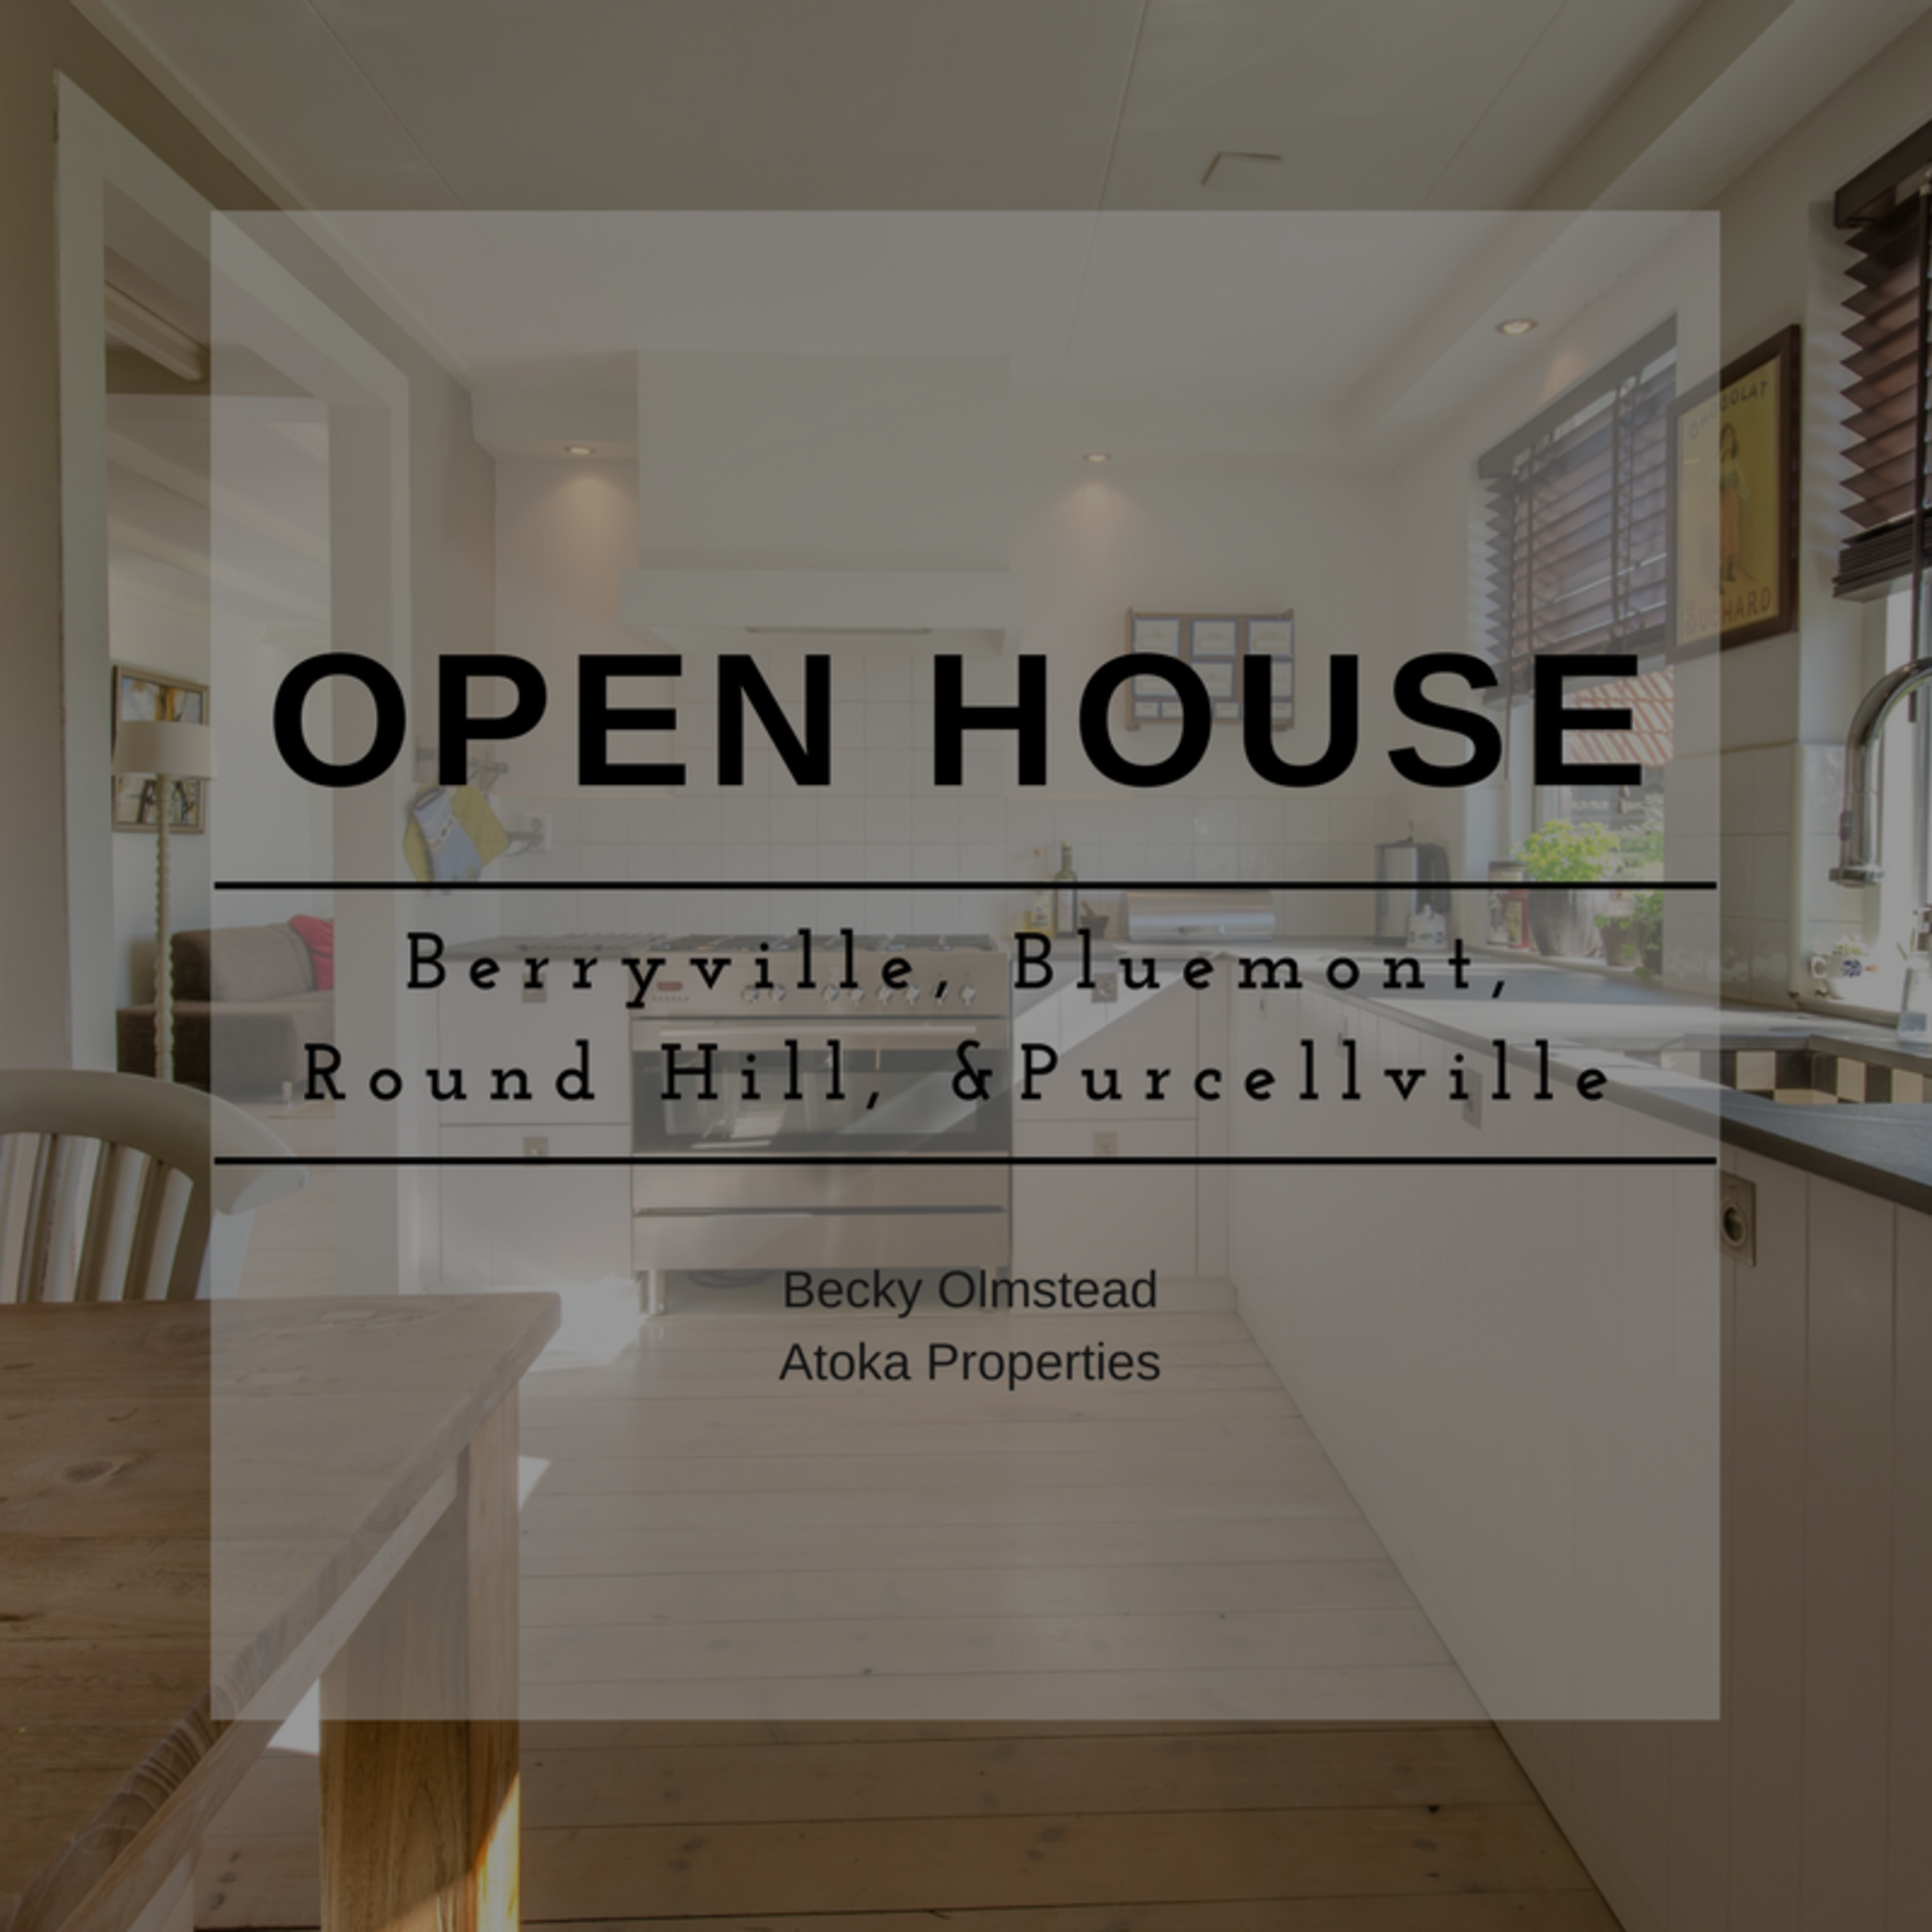 OPEN HOUSE LIST 1/27/18 – 1/28/18